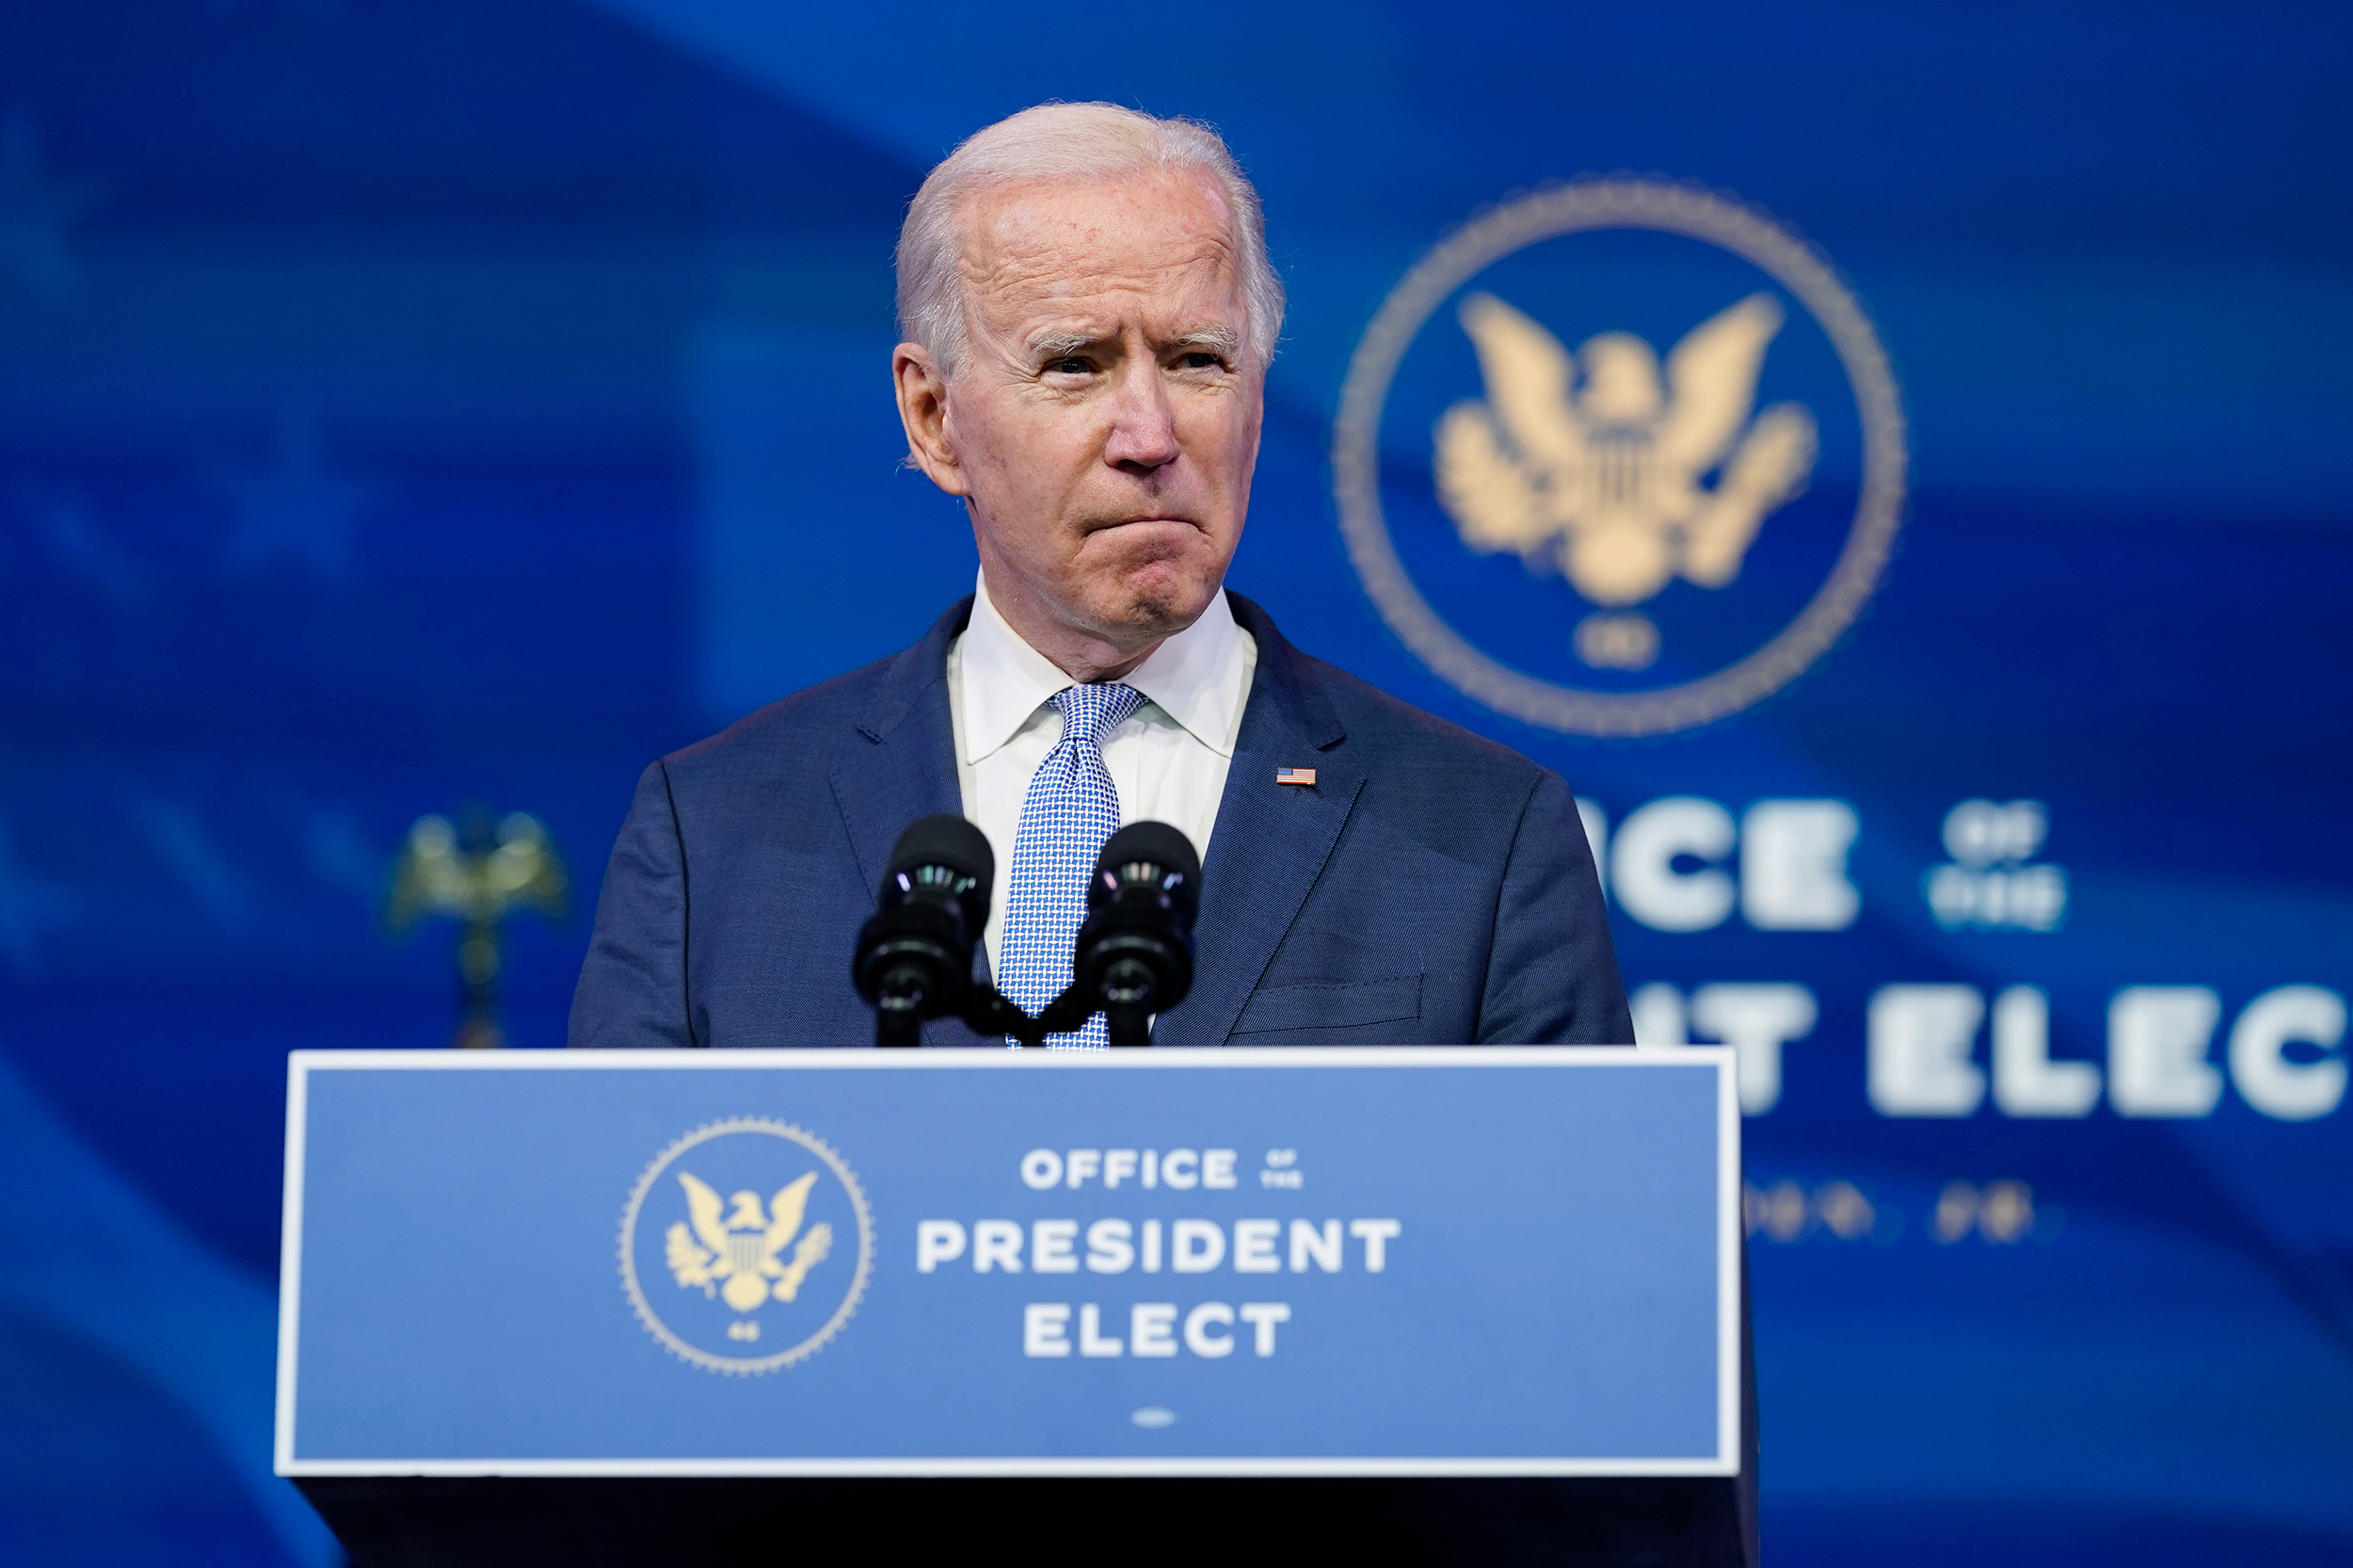 Biden aides told congressional allies to expect Covid relief package with roughly $2 trillion price tag